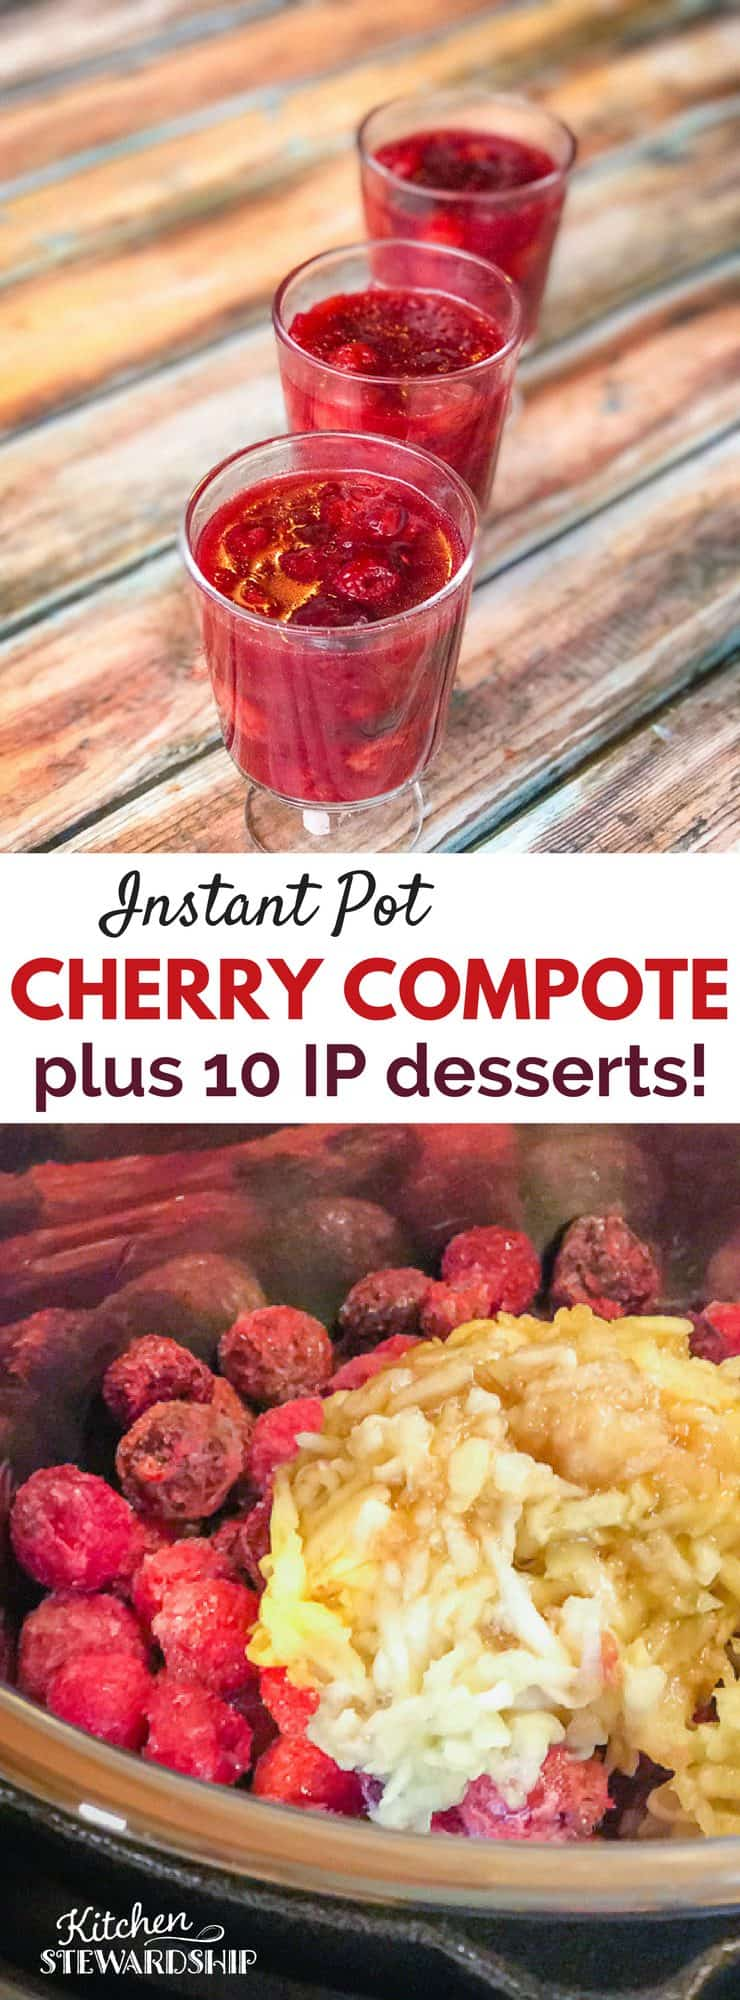 Instant Pot Cherry Compote recipe - quick and delicious. Paleo and AIP this recipe is for everyone...but it's so good you may not want to share!